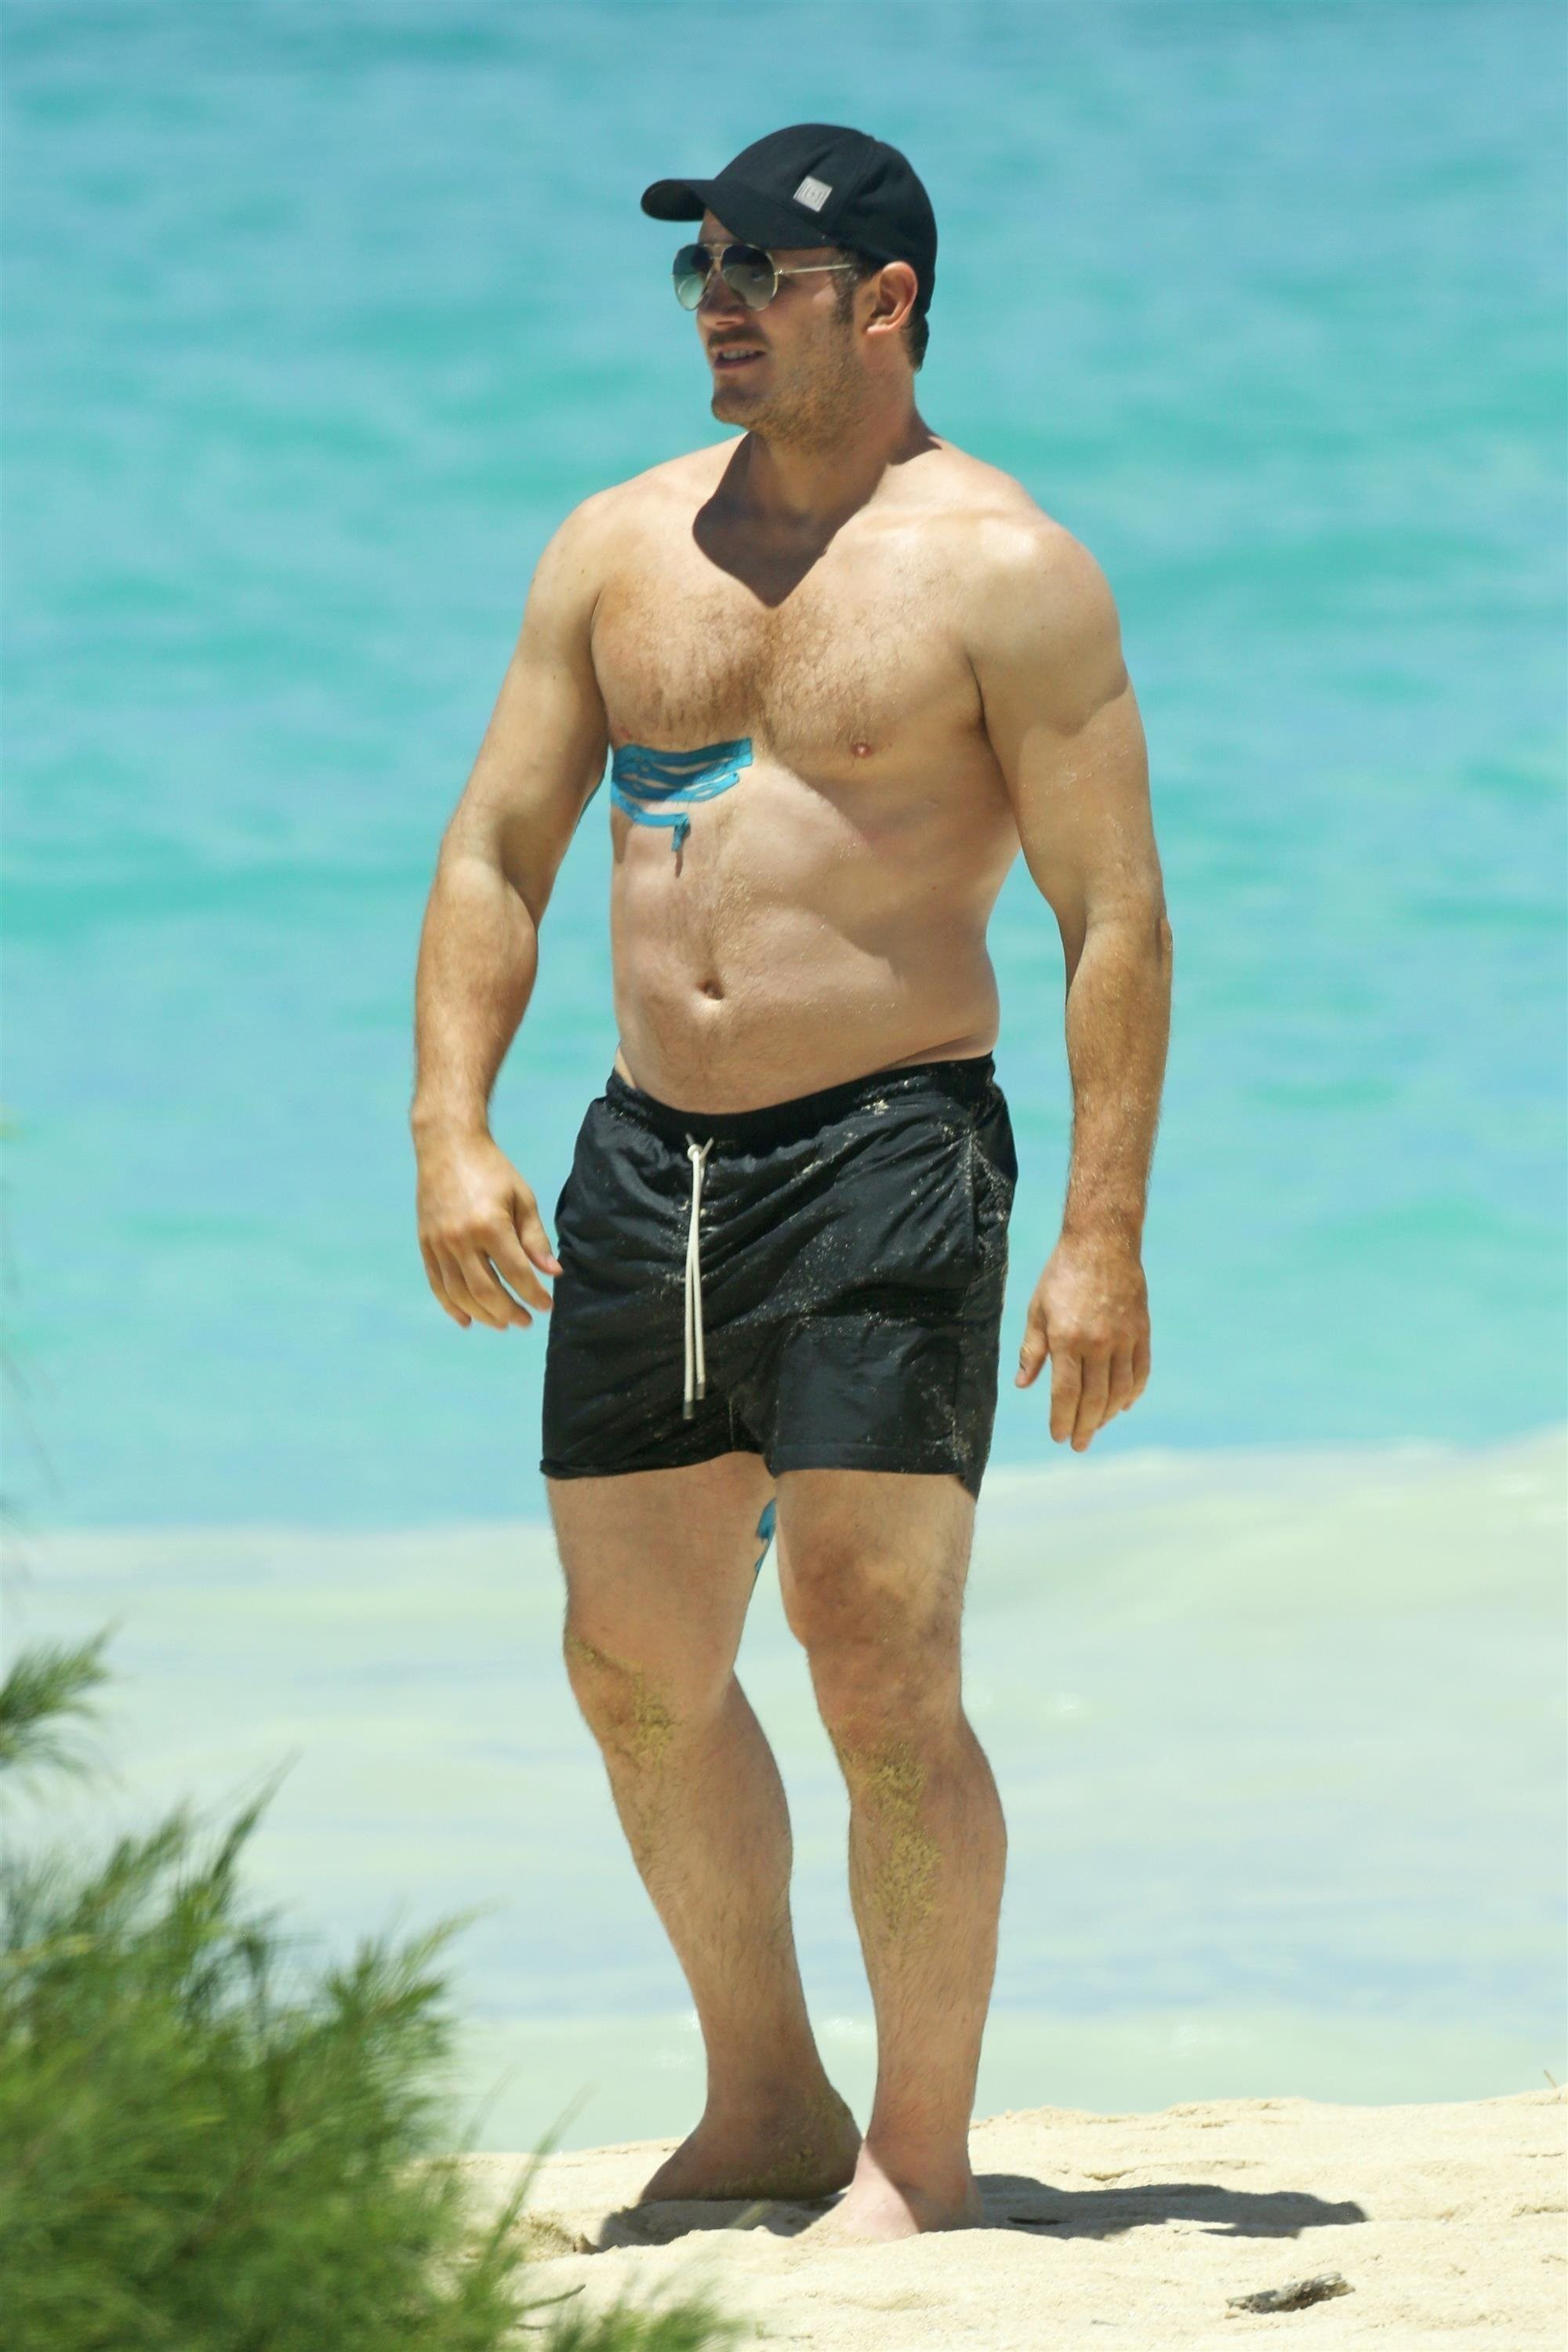 Chris Pratt shows off his summer ready beach bod as he plays on the beach in Honolulu on June 25, 2017.